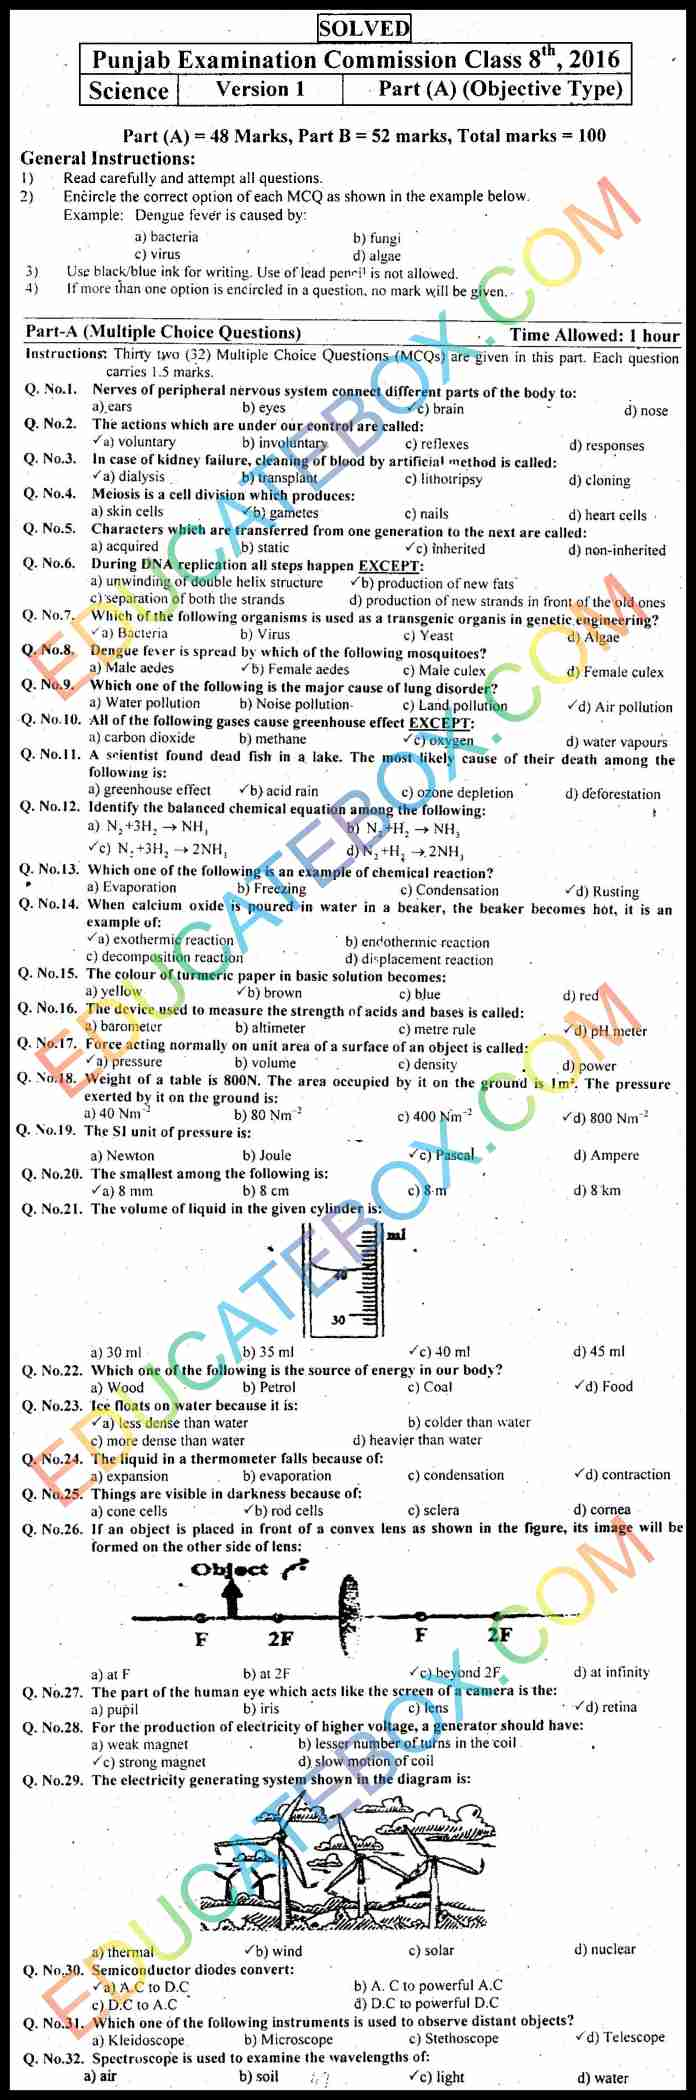 Past Paper 8th Class Science 2016 Solved Paper (English Medium) Punjab Board (PEC) Objective Type Version 1